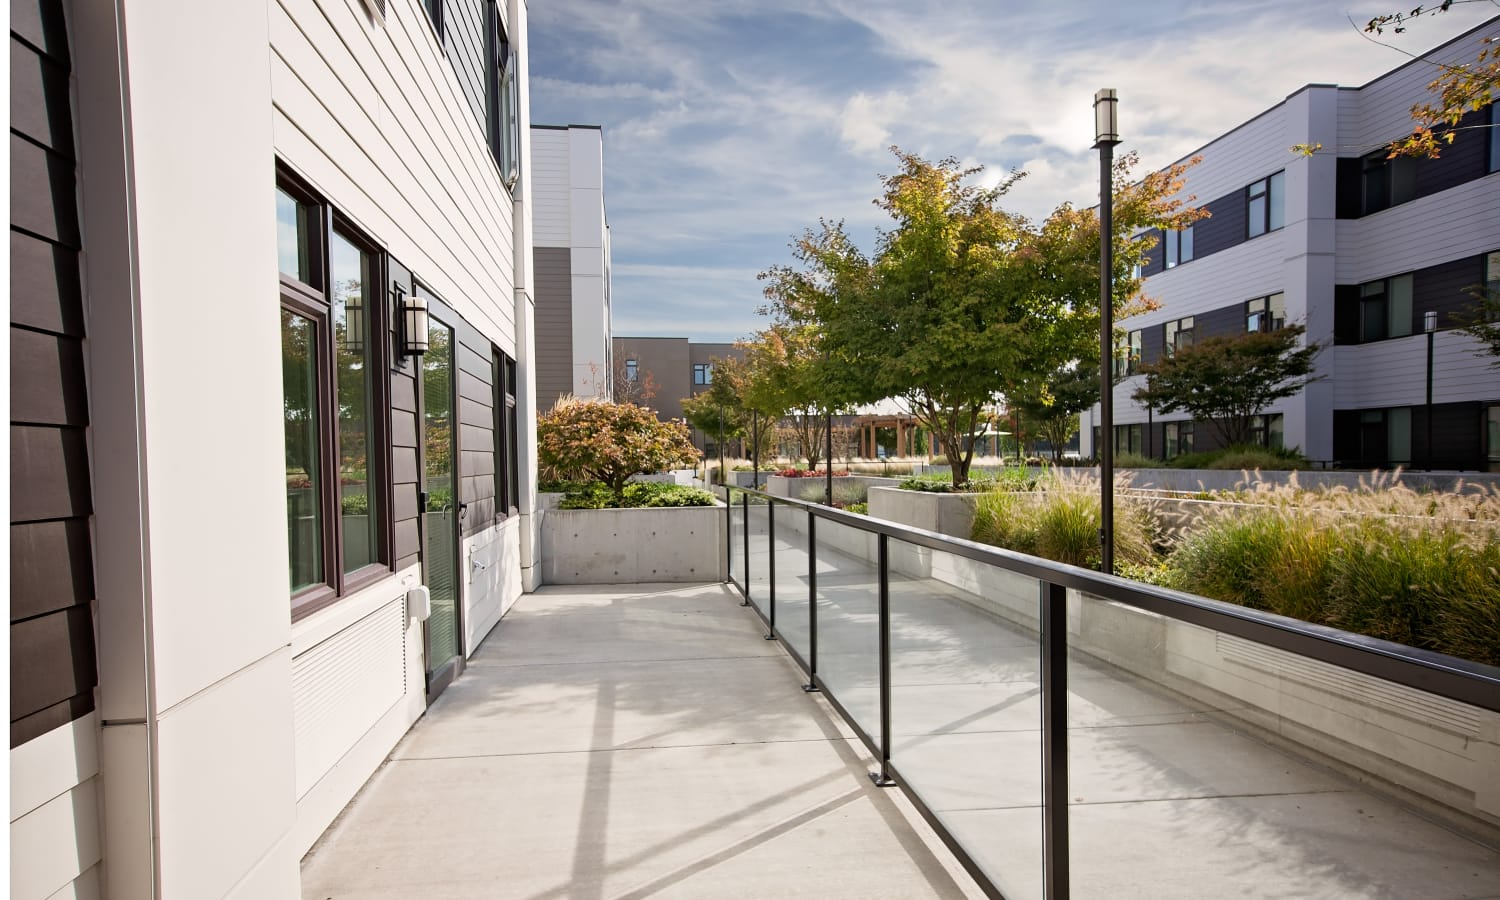 Exterior walkway providing easy access to neighborhood for Grant Park Village residents in Portland, OR